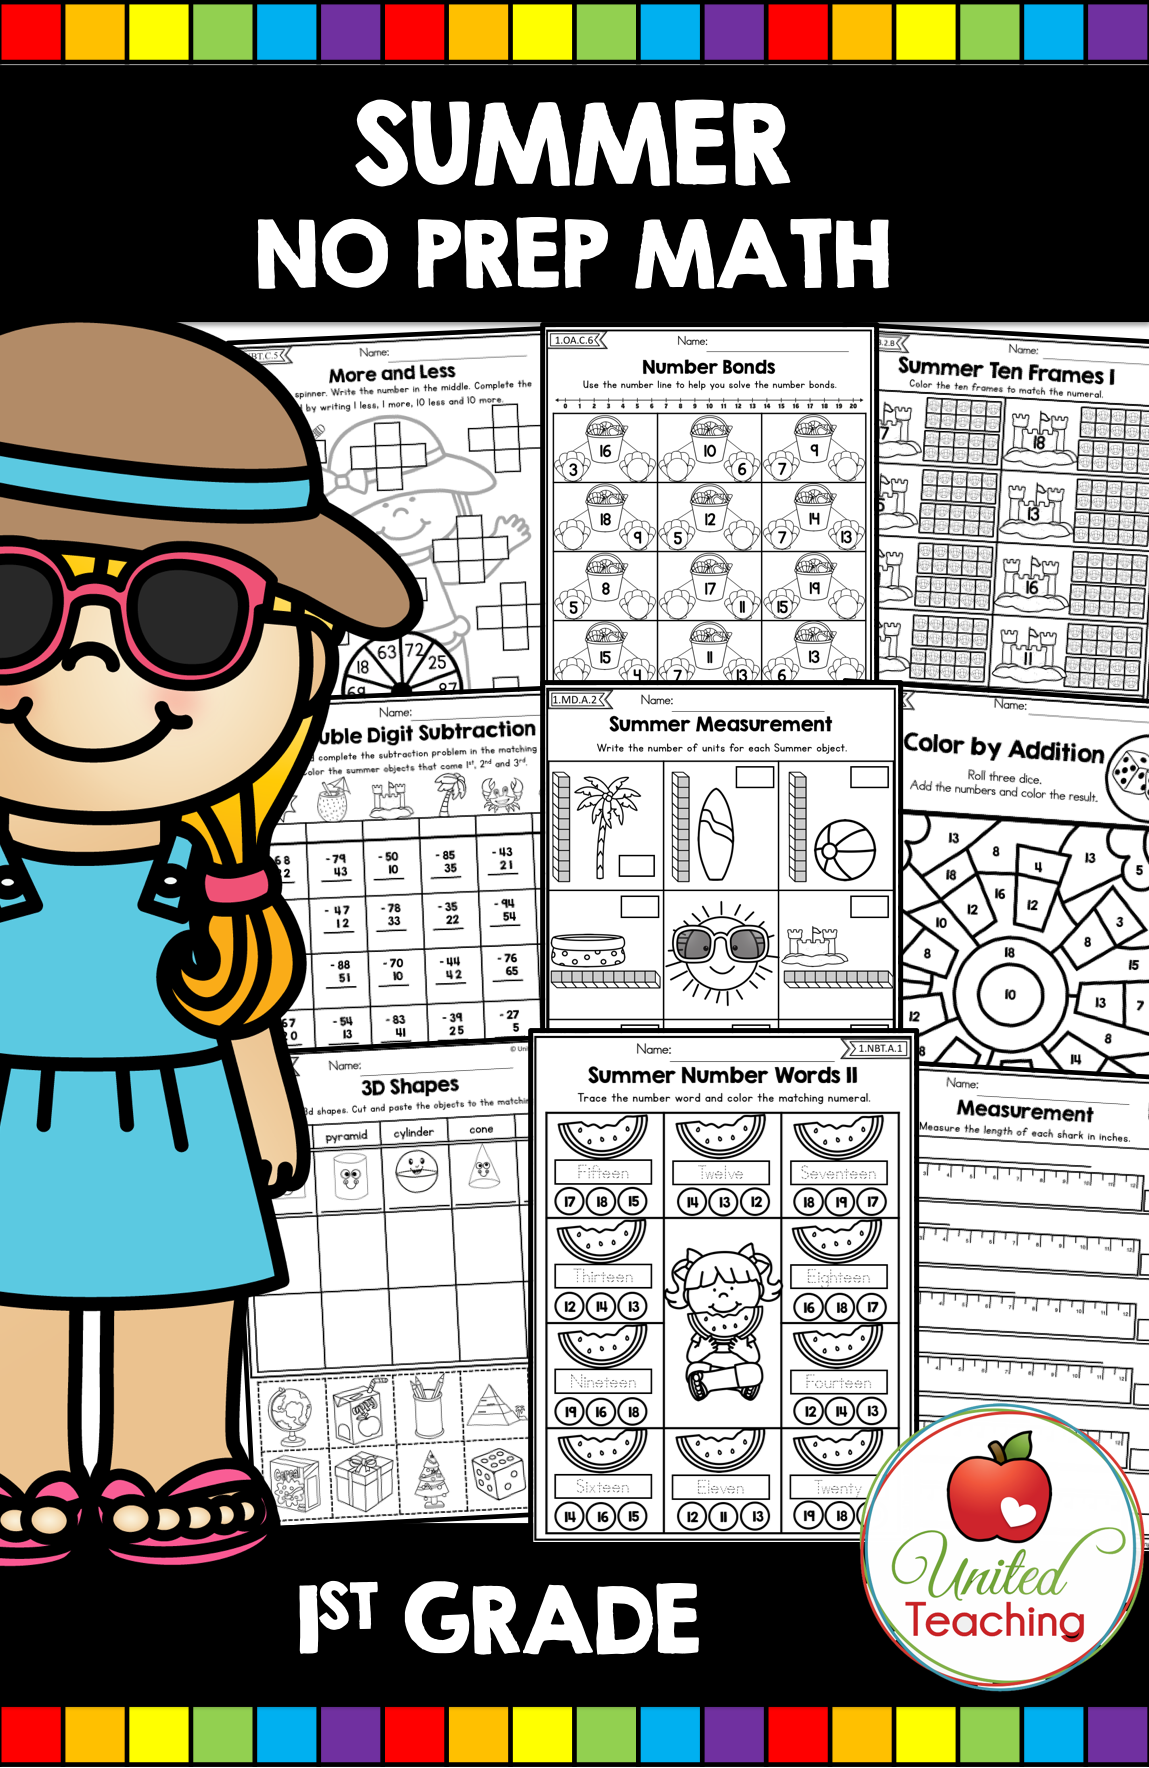 Summer Math Packet 1st Grade